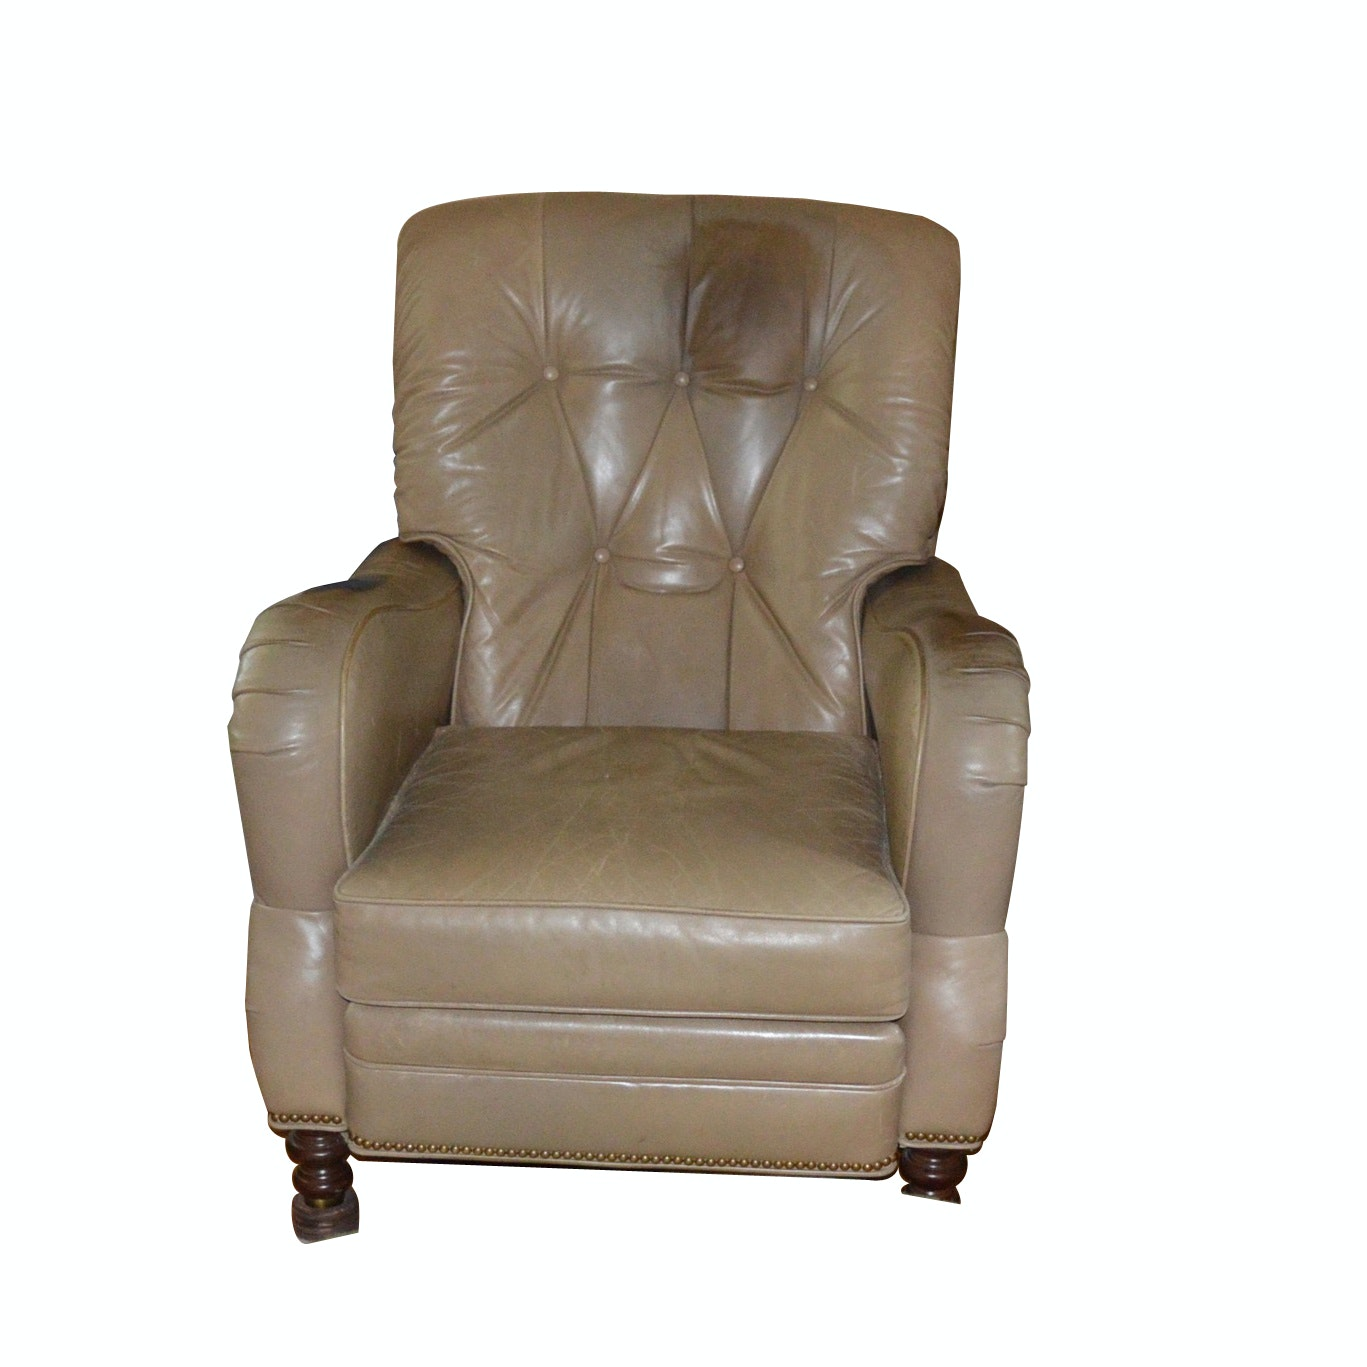 Motioncraft Leather Recliner with Antique Brass Nailhead Trim